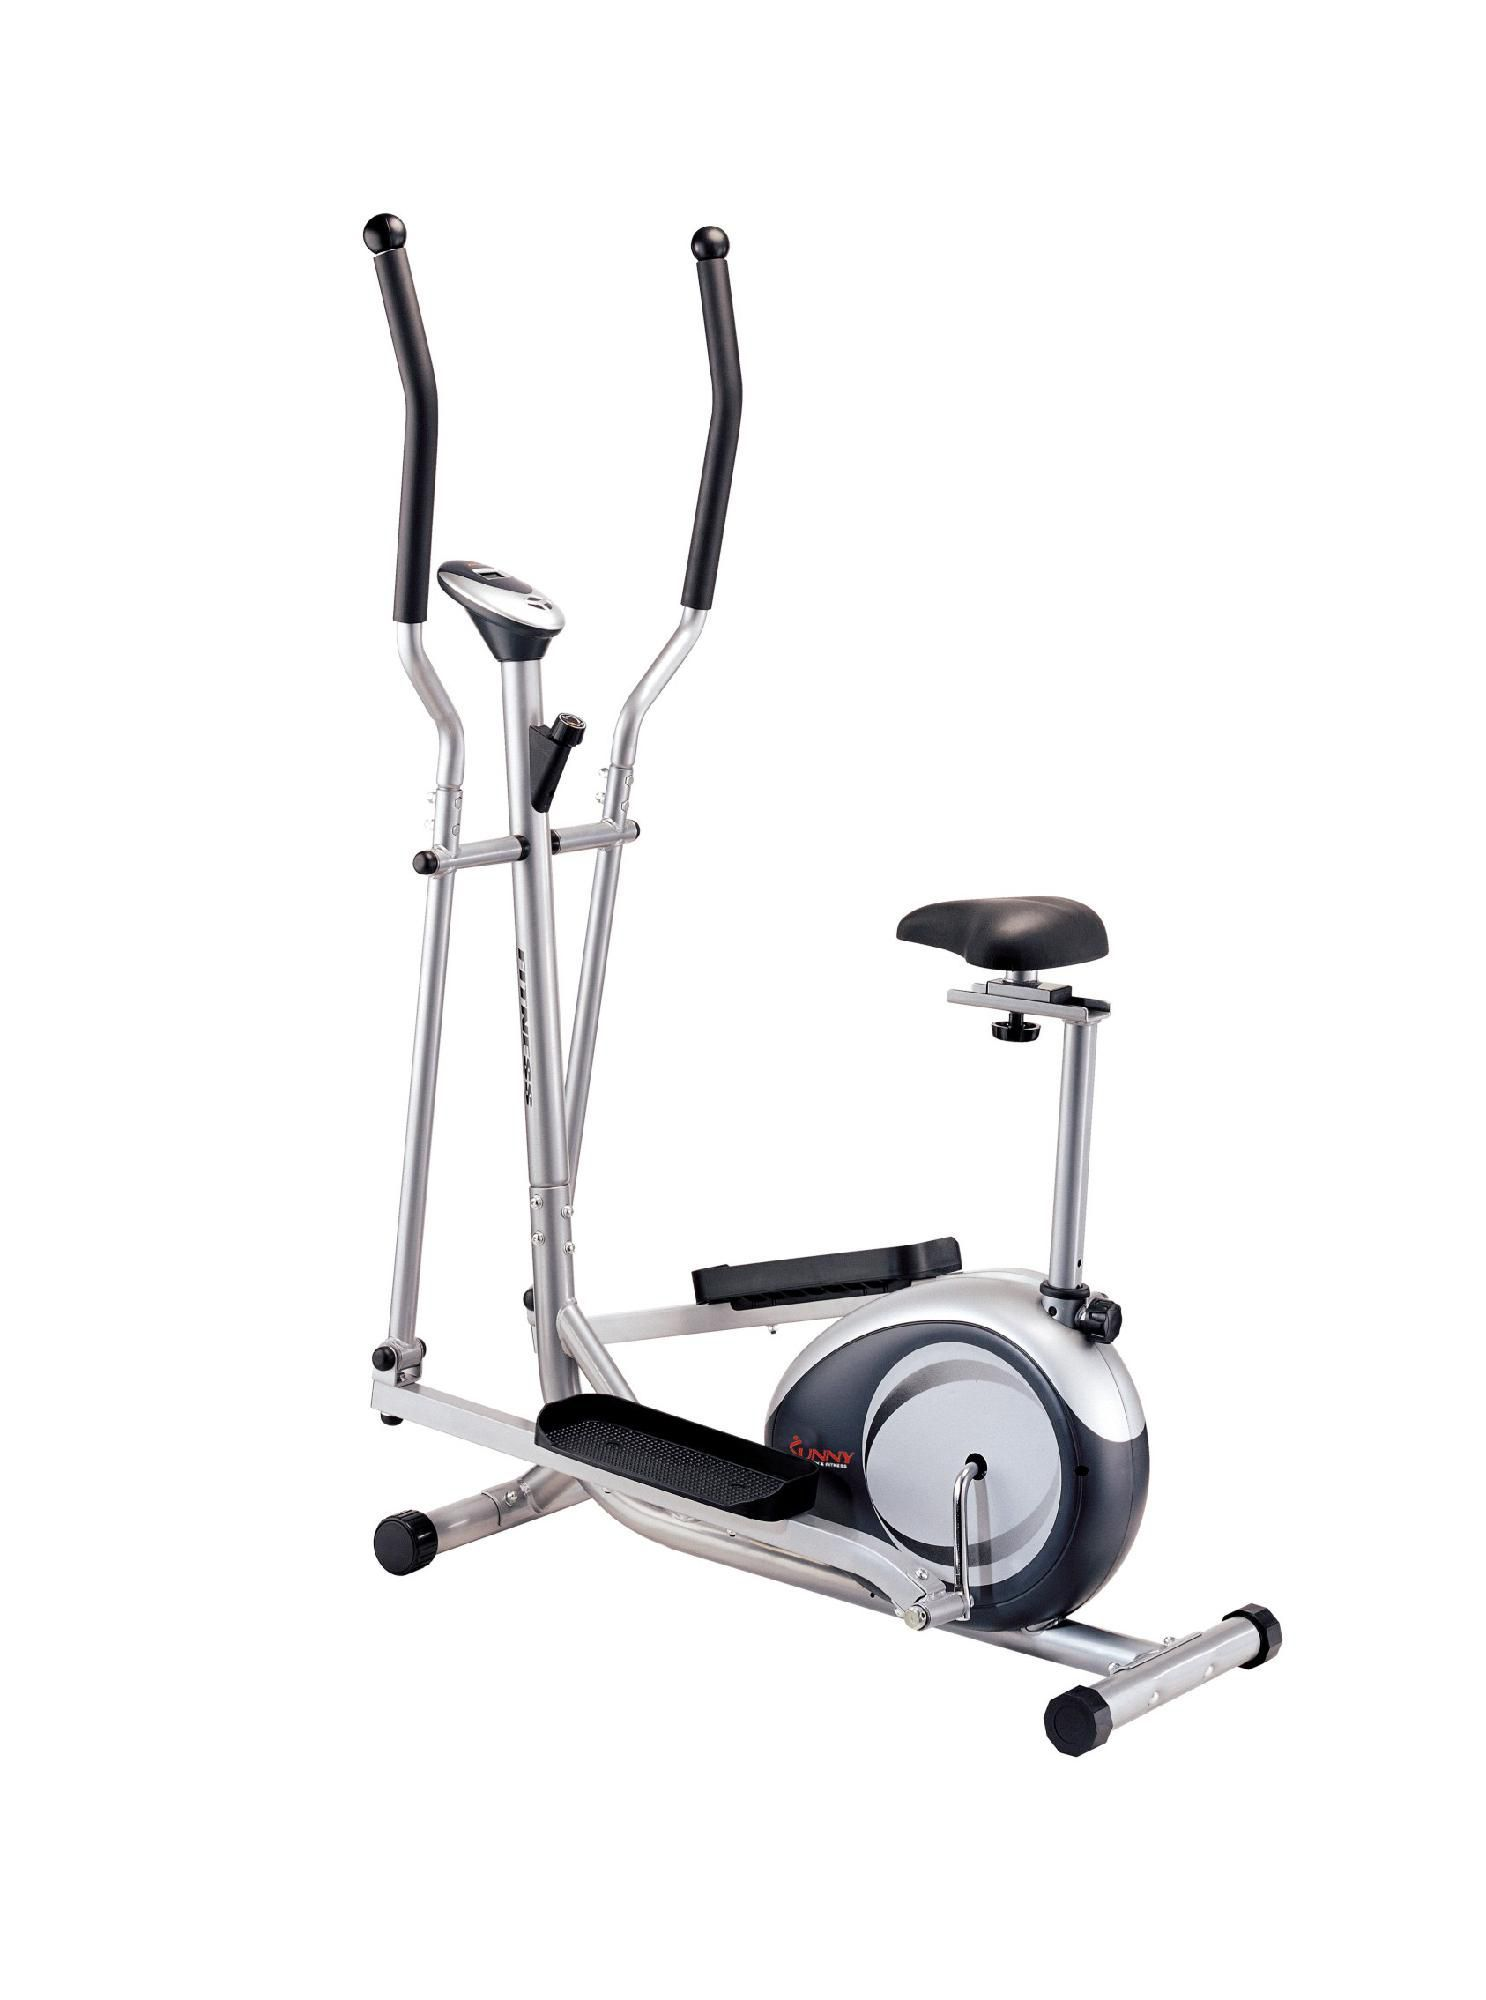 Sunny health fitness 2 in 1 elliptical trainer and up